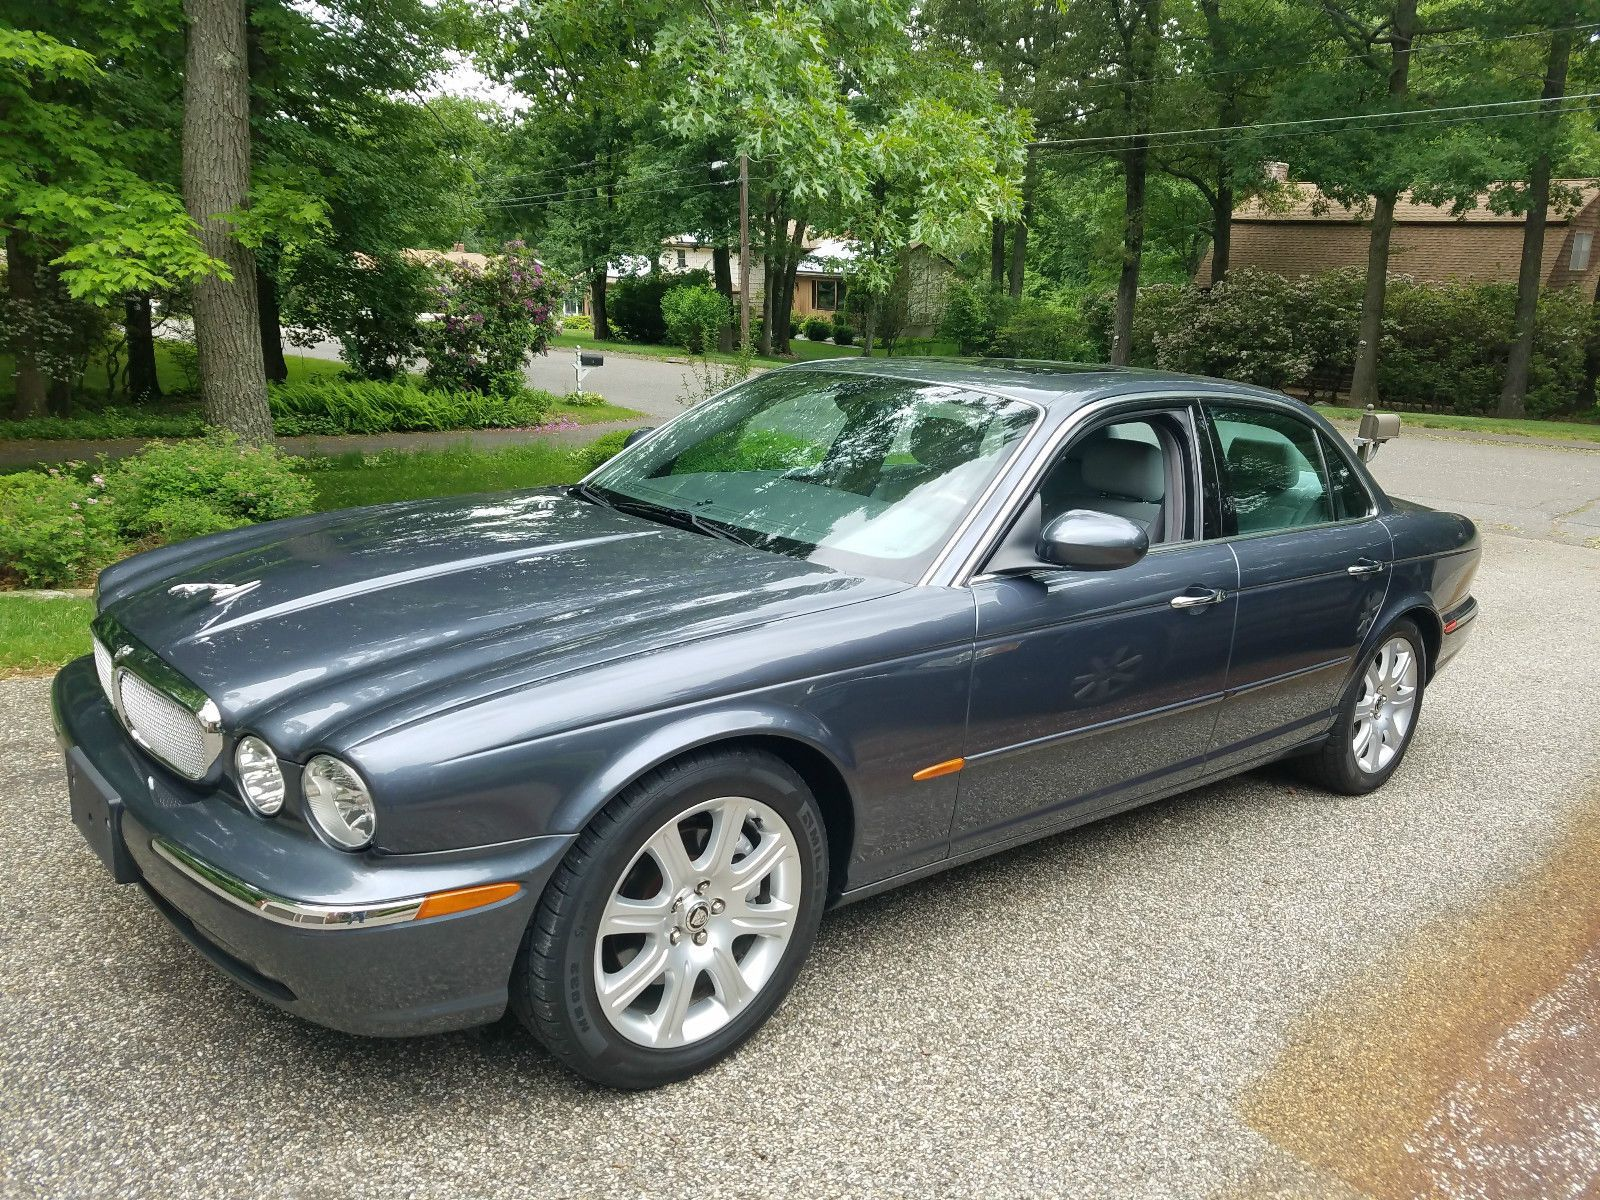 carfinder for certificate auctions view en green lot in jaguar on auto copart left salvage north online il sale chicago